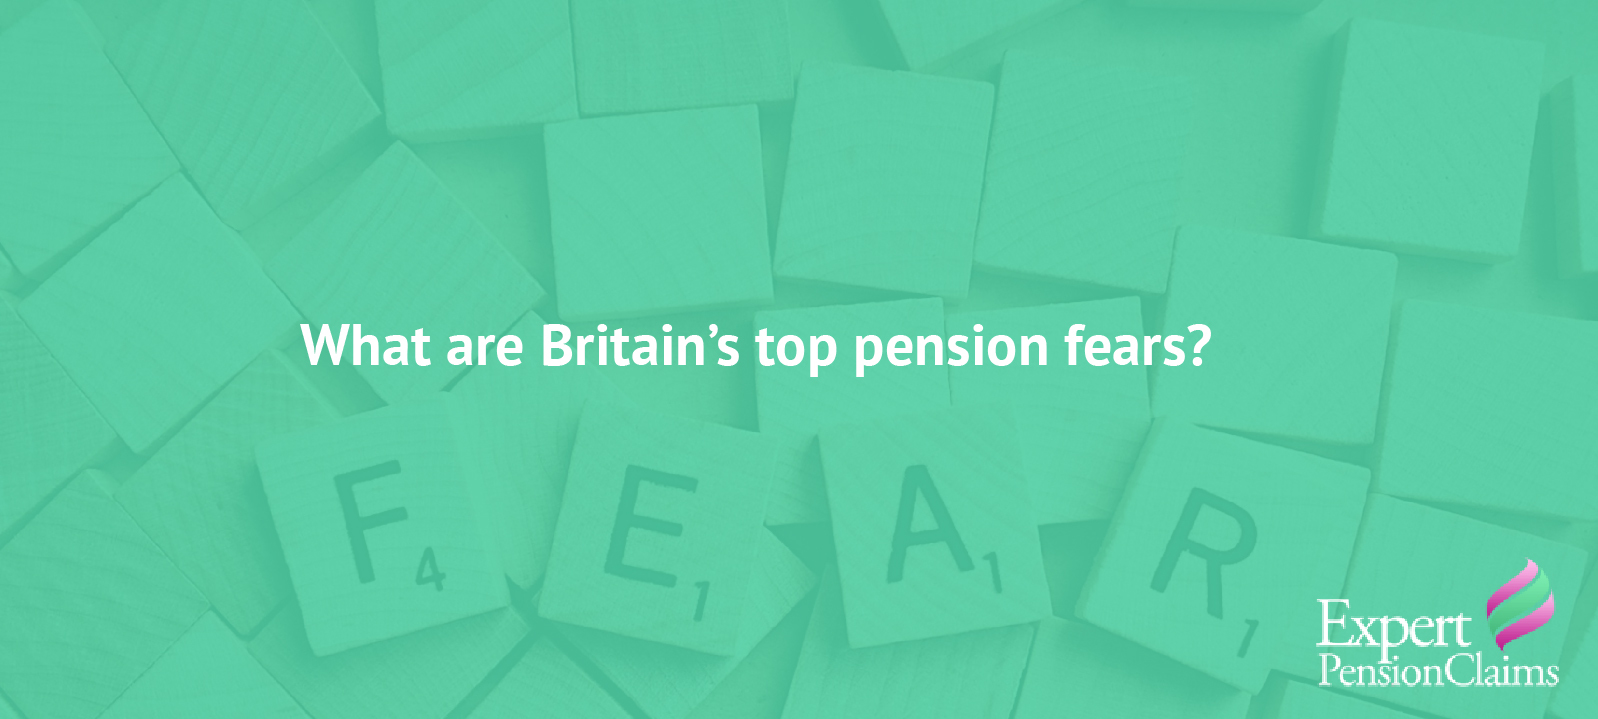 Britain's top pension fears are not what you might think